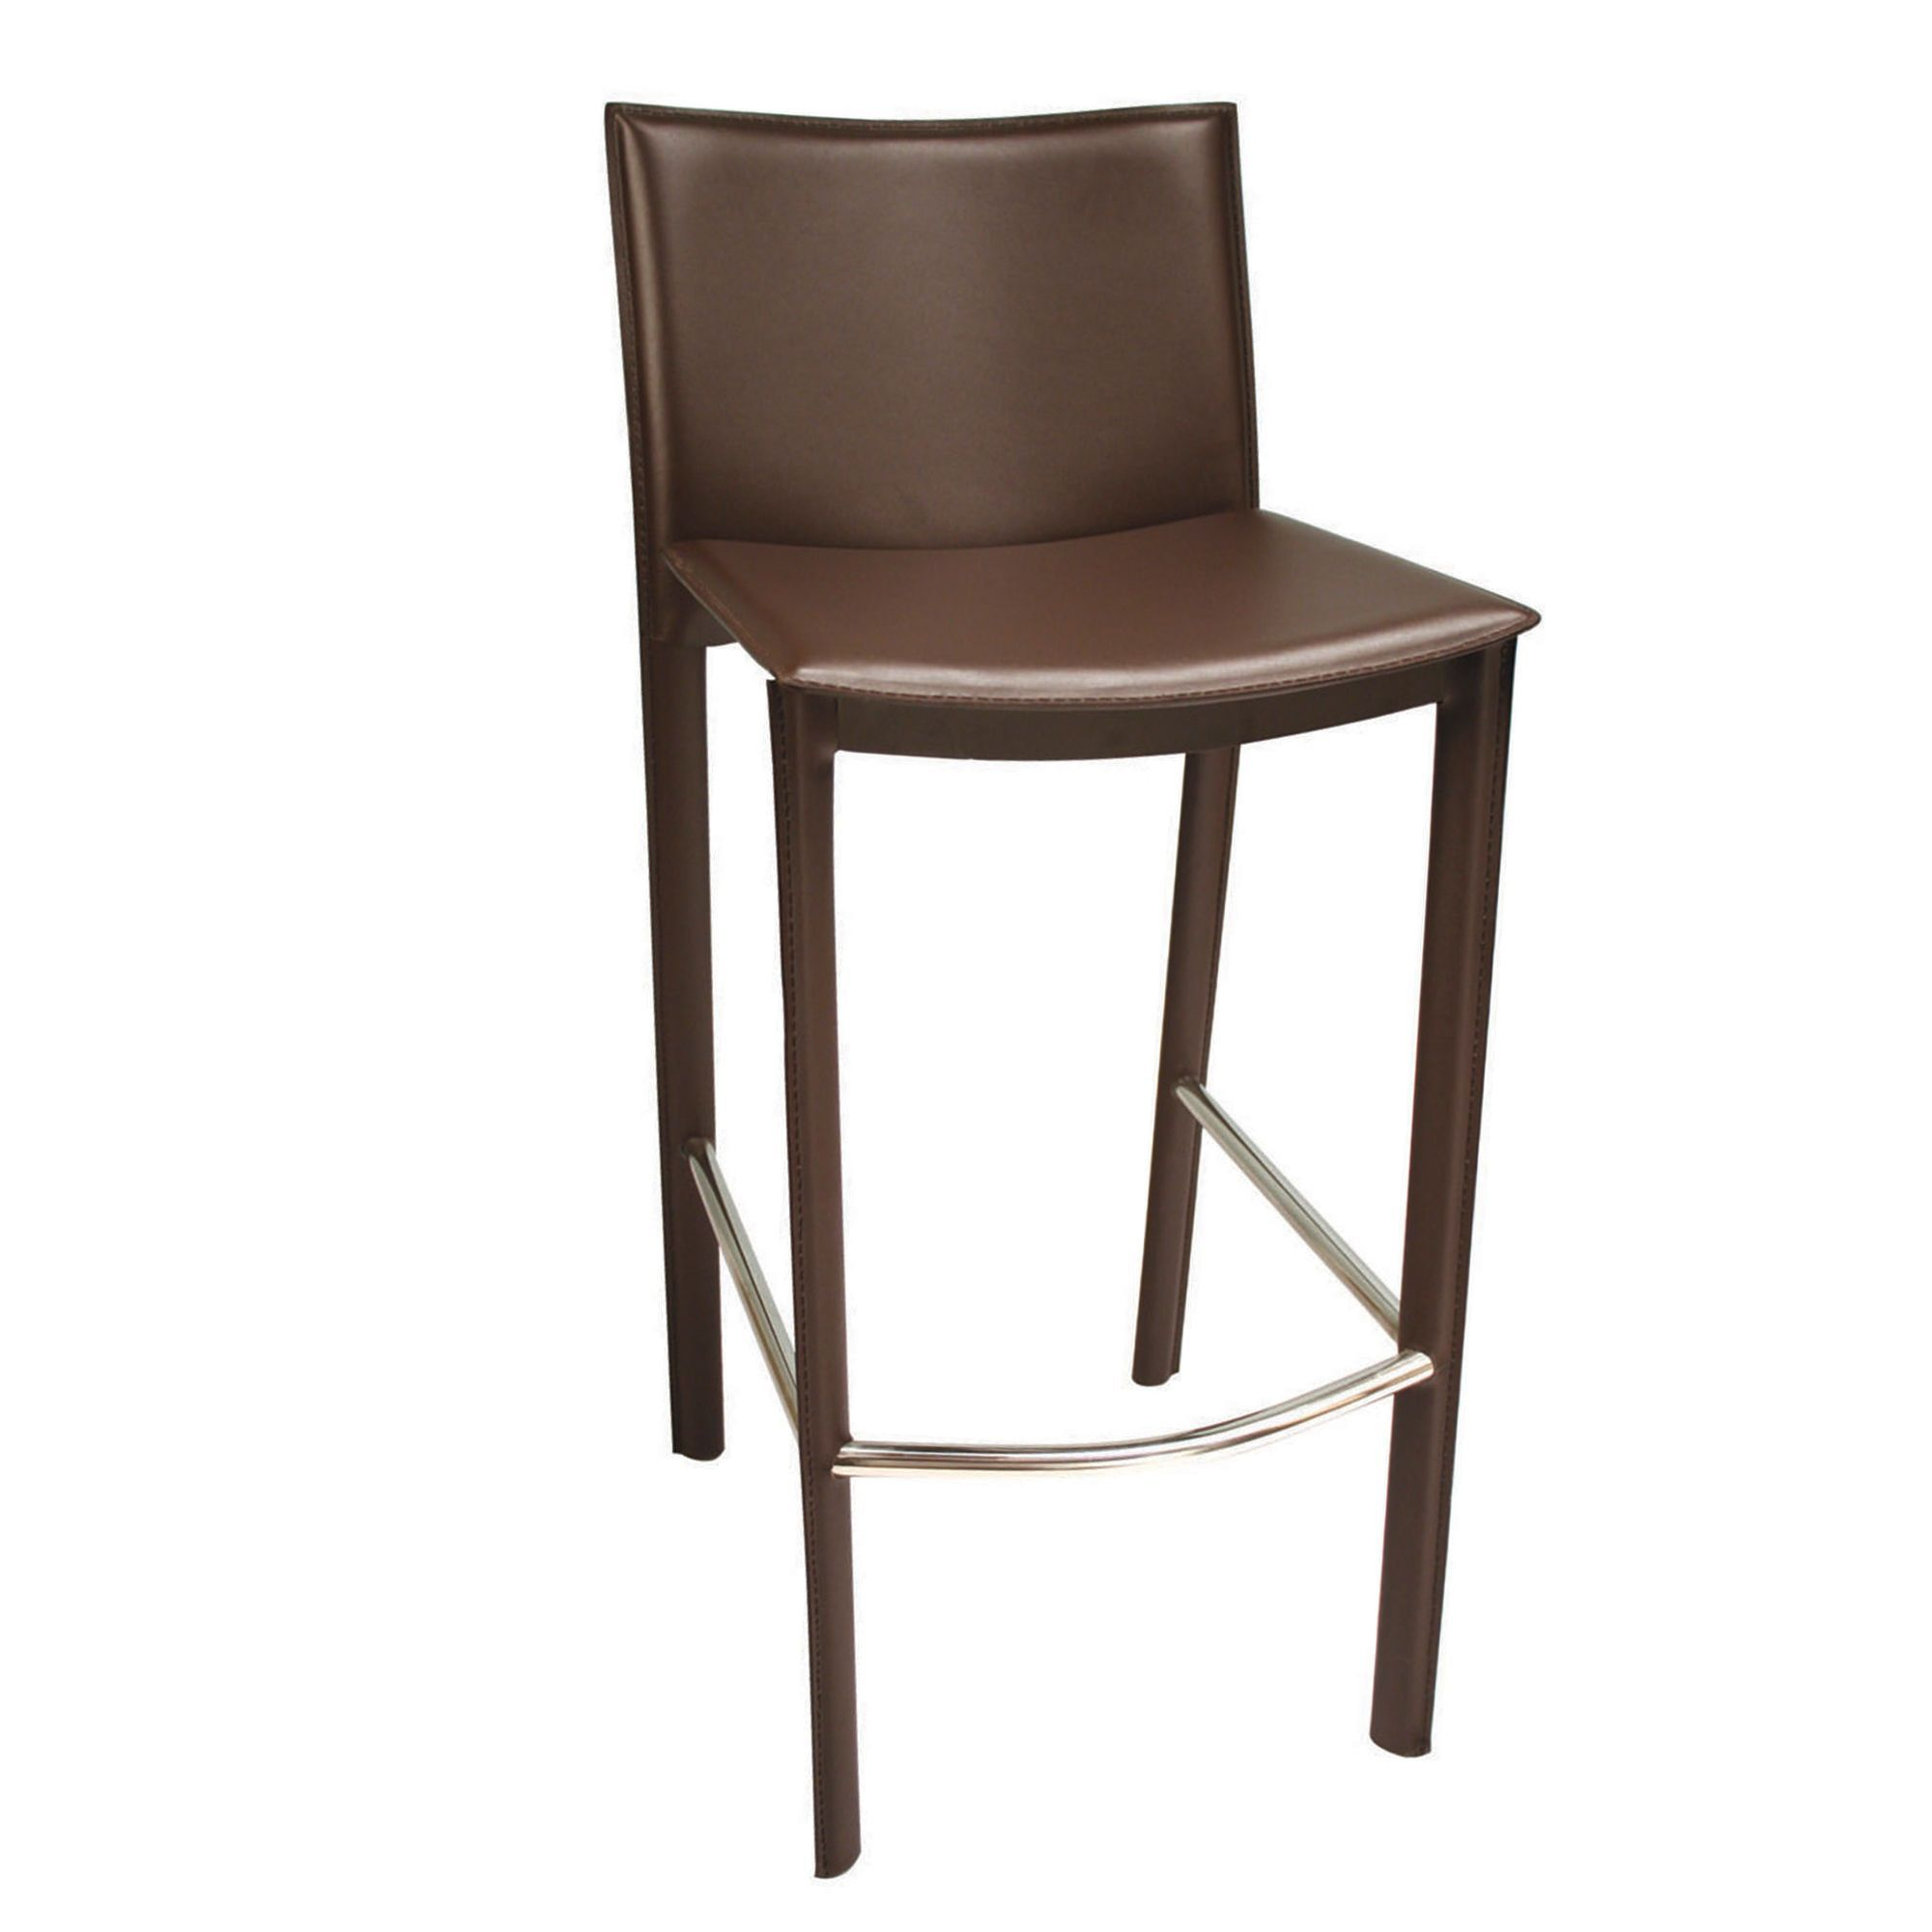 Beautiful Brown Faux Leather Bar Stools